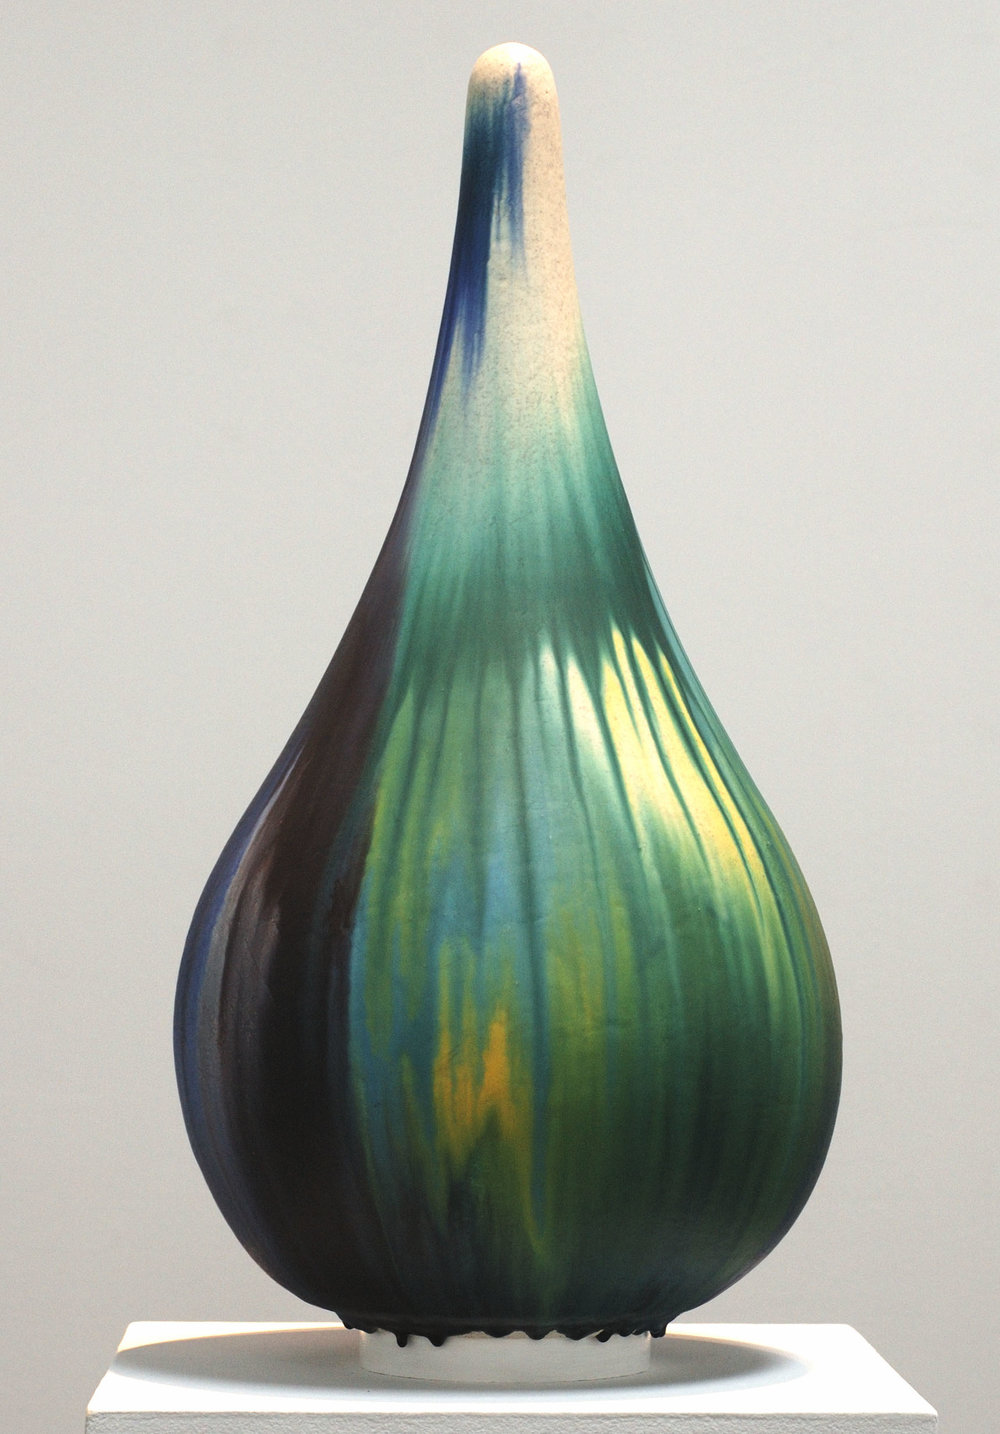 Mineo Mizuno   Tear Drop - TS10  (2007) Ceramic, 15 x 30 x 15in.